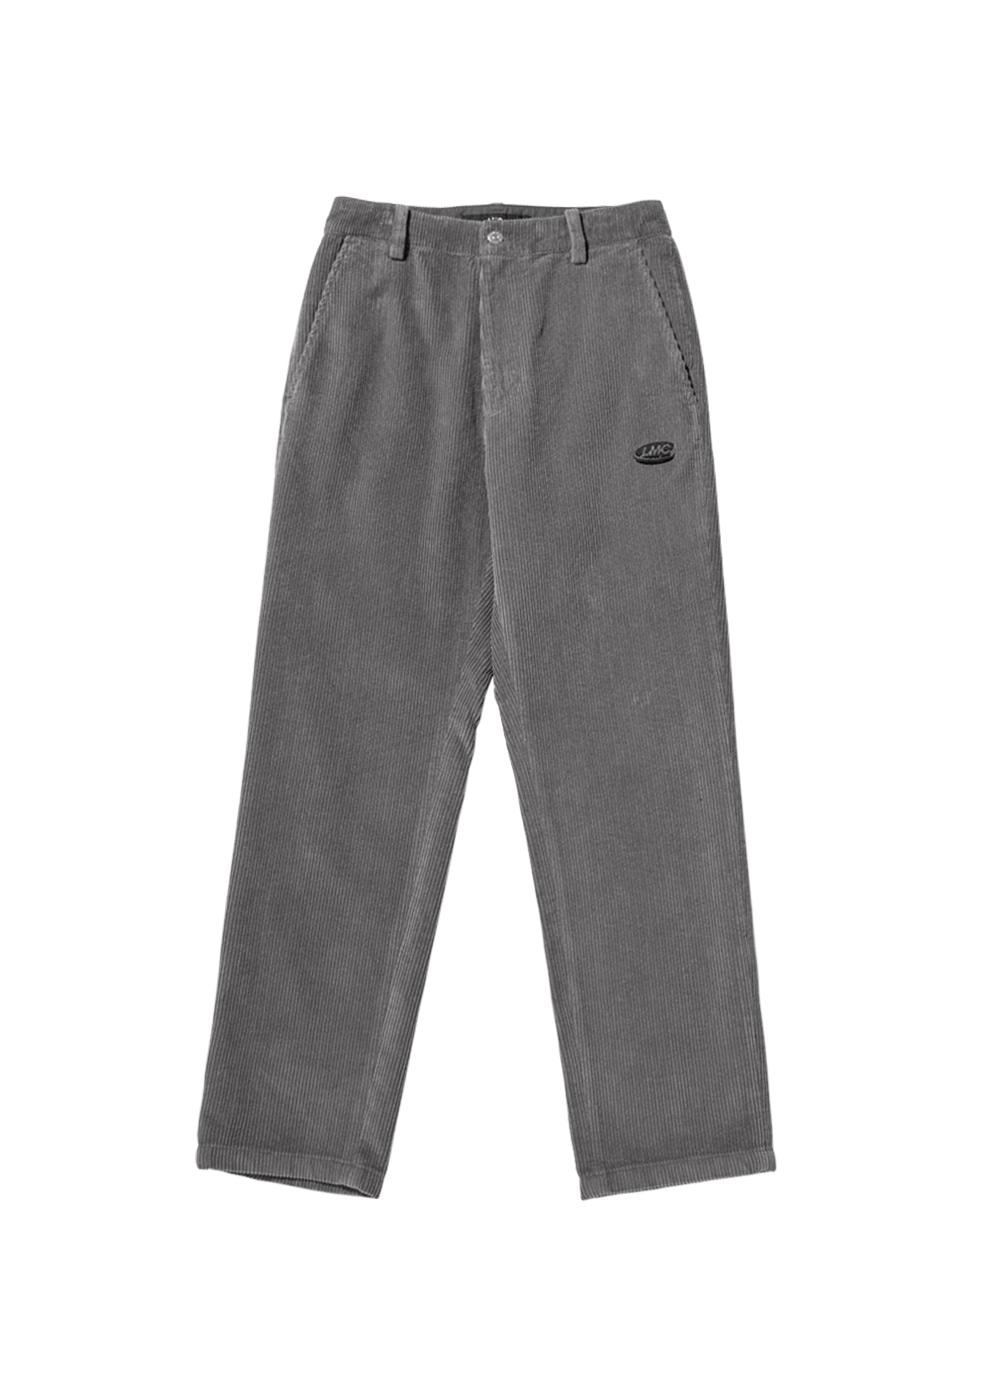 LMC CORDUROY PANTS gray